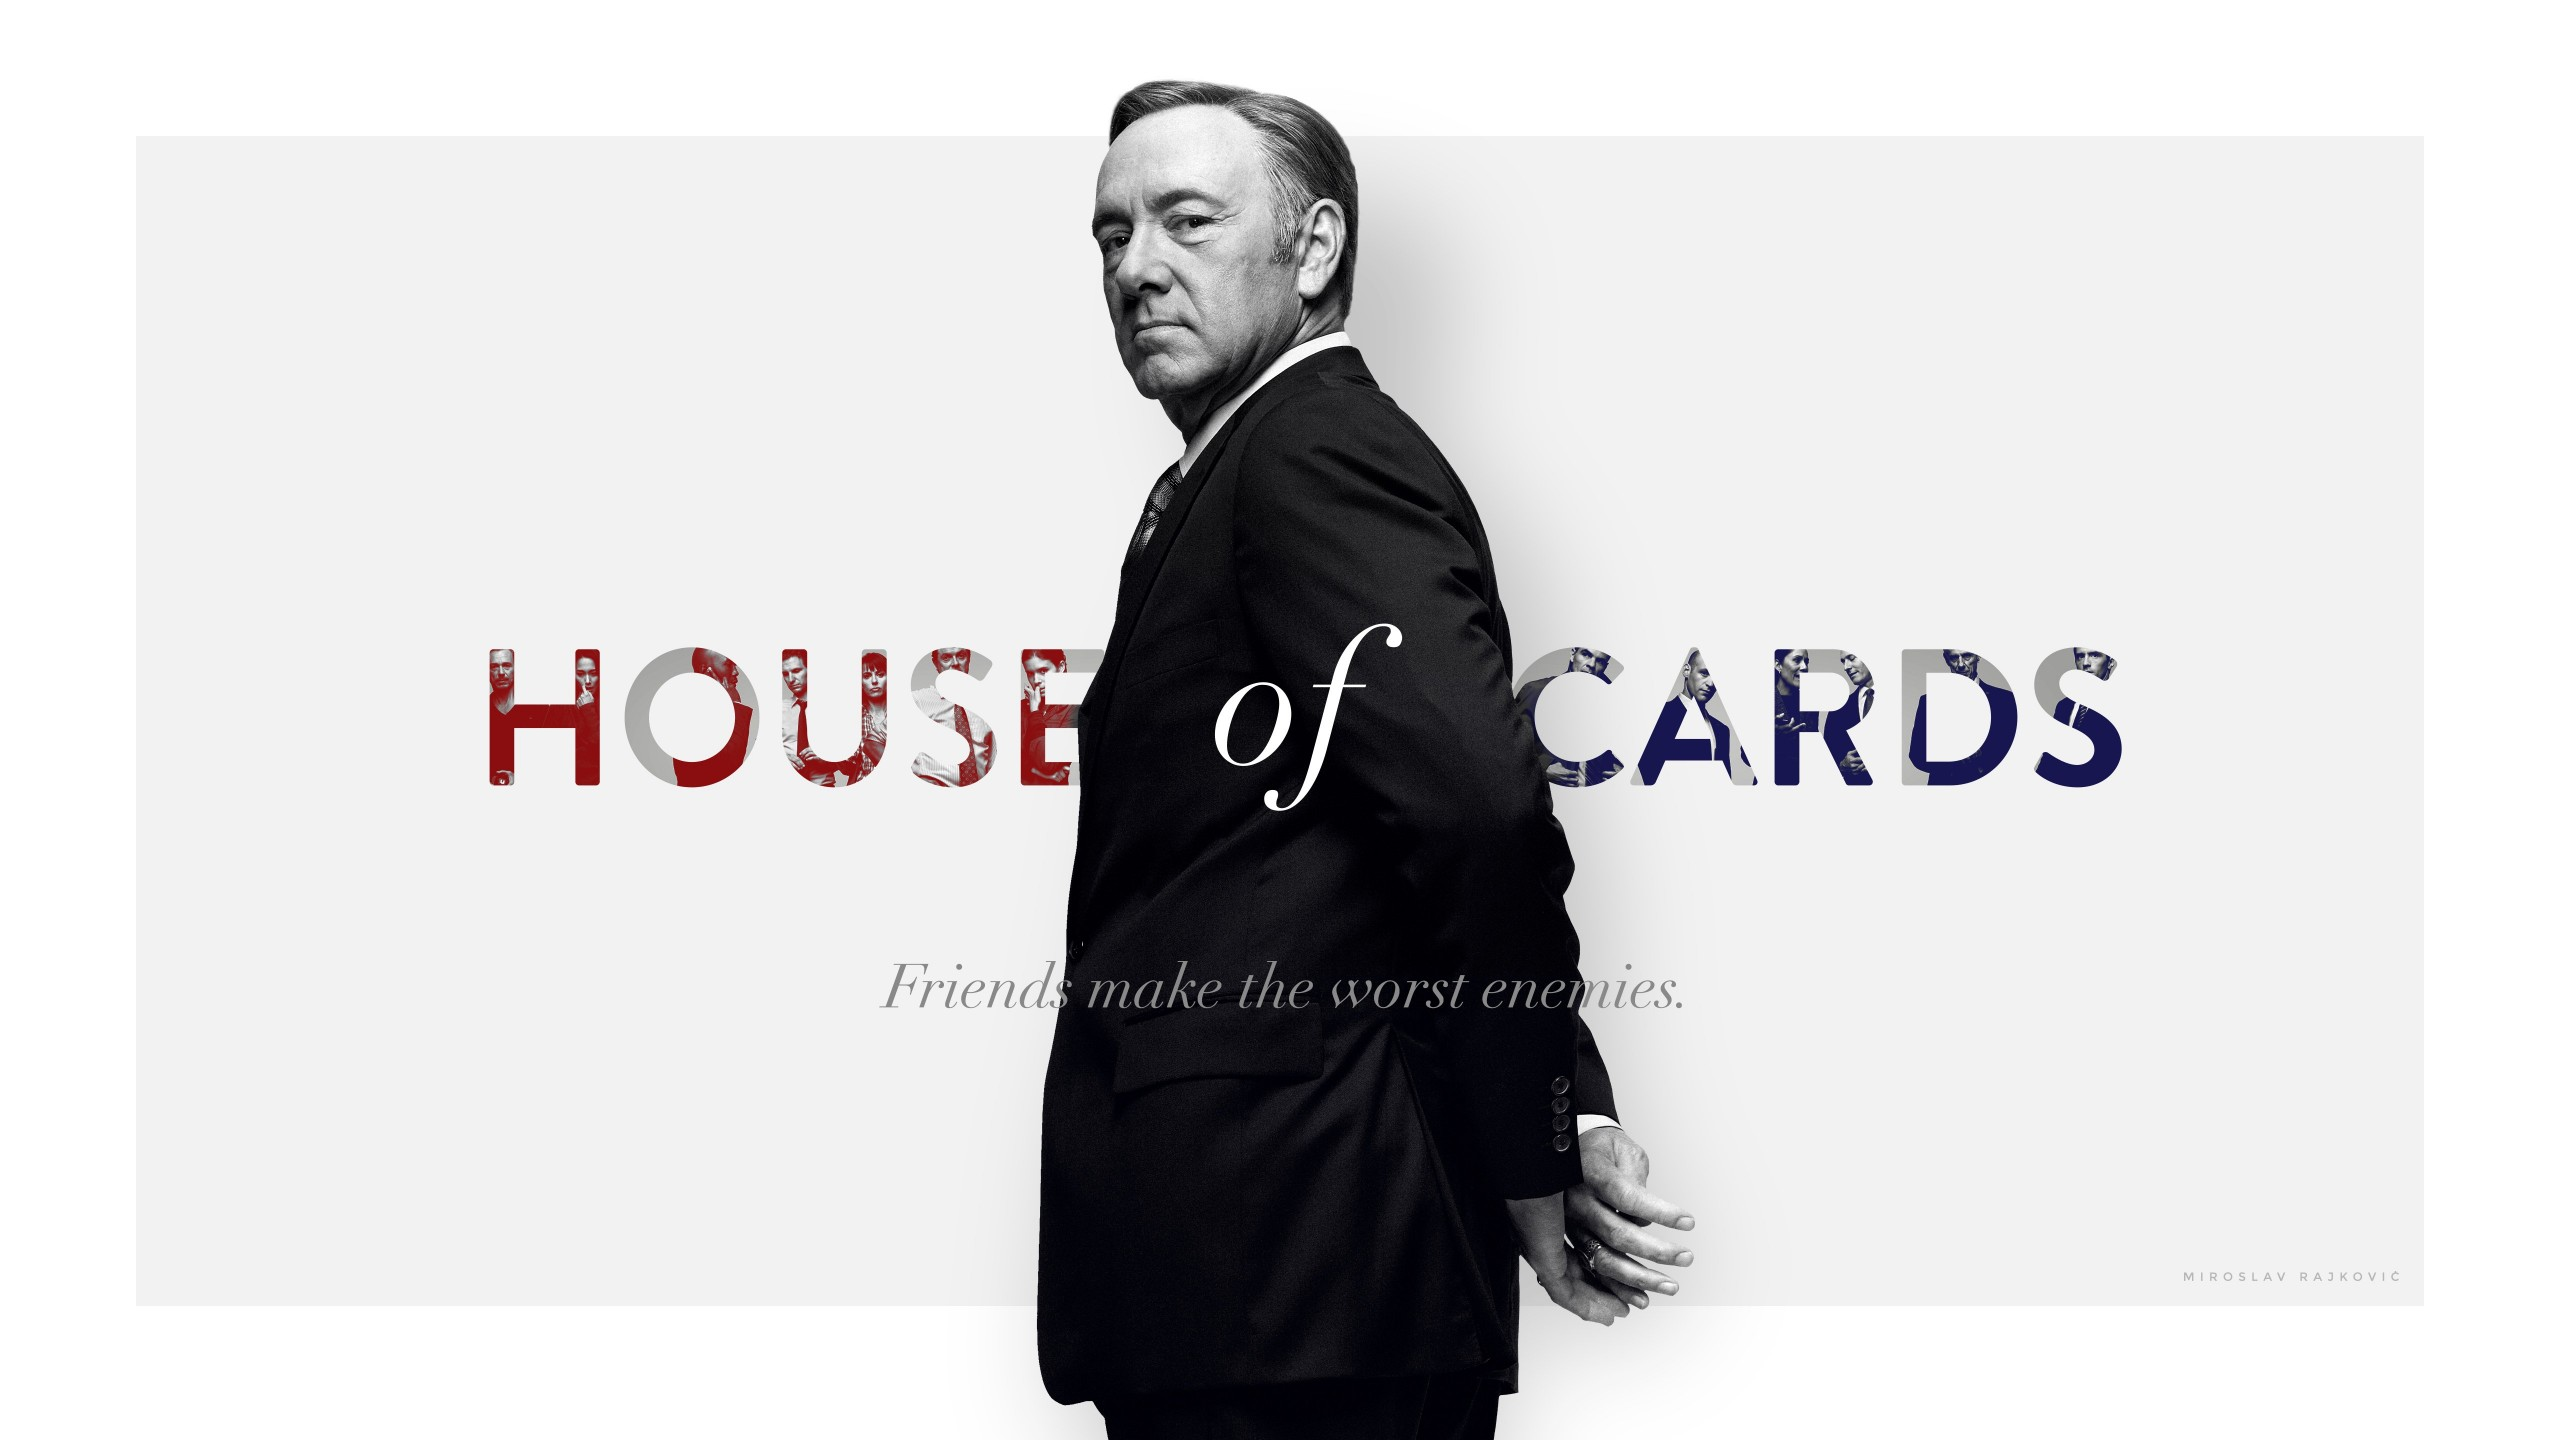 Frank Underwood - House of Cards Wallpaper for Social Media YouTube Channel Art